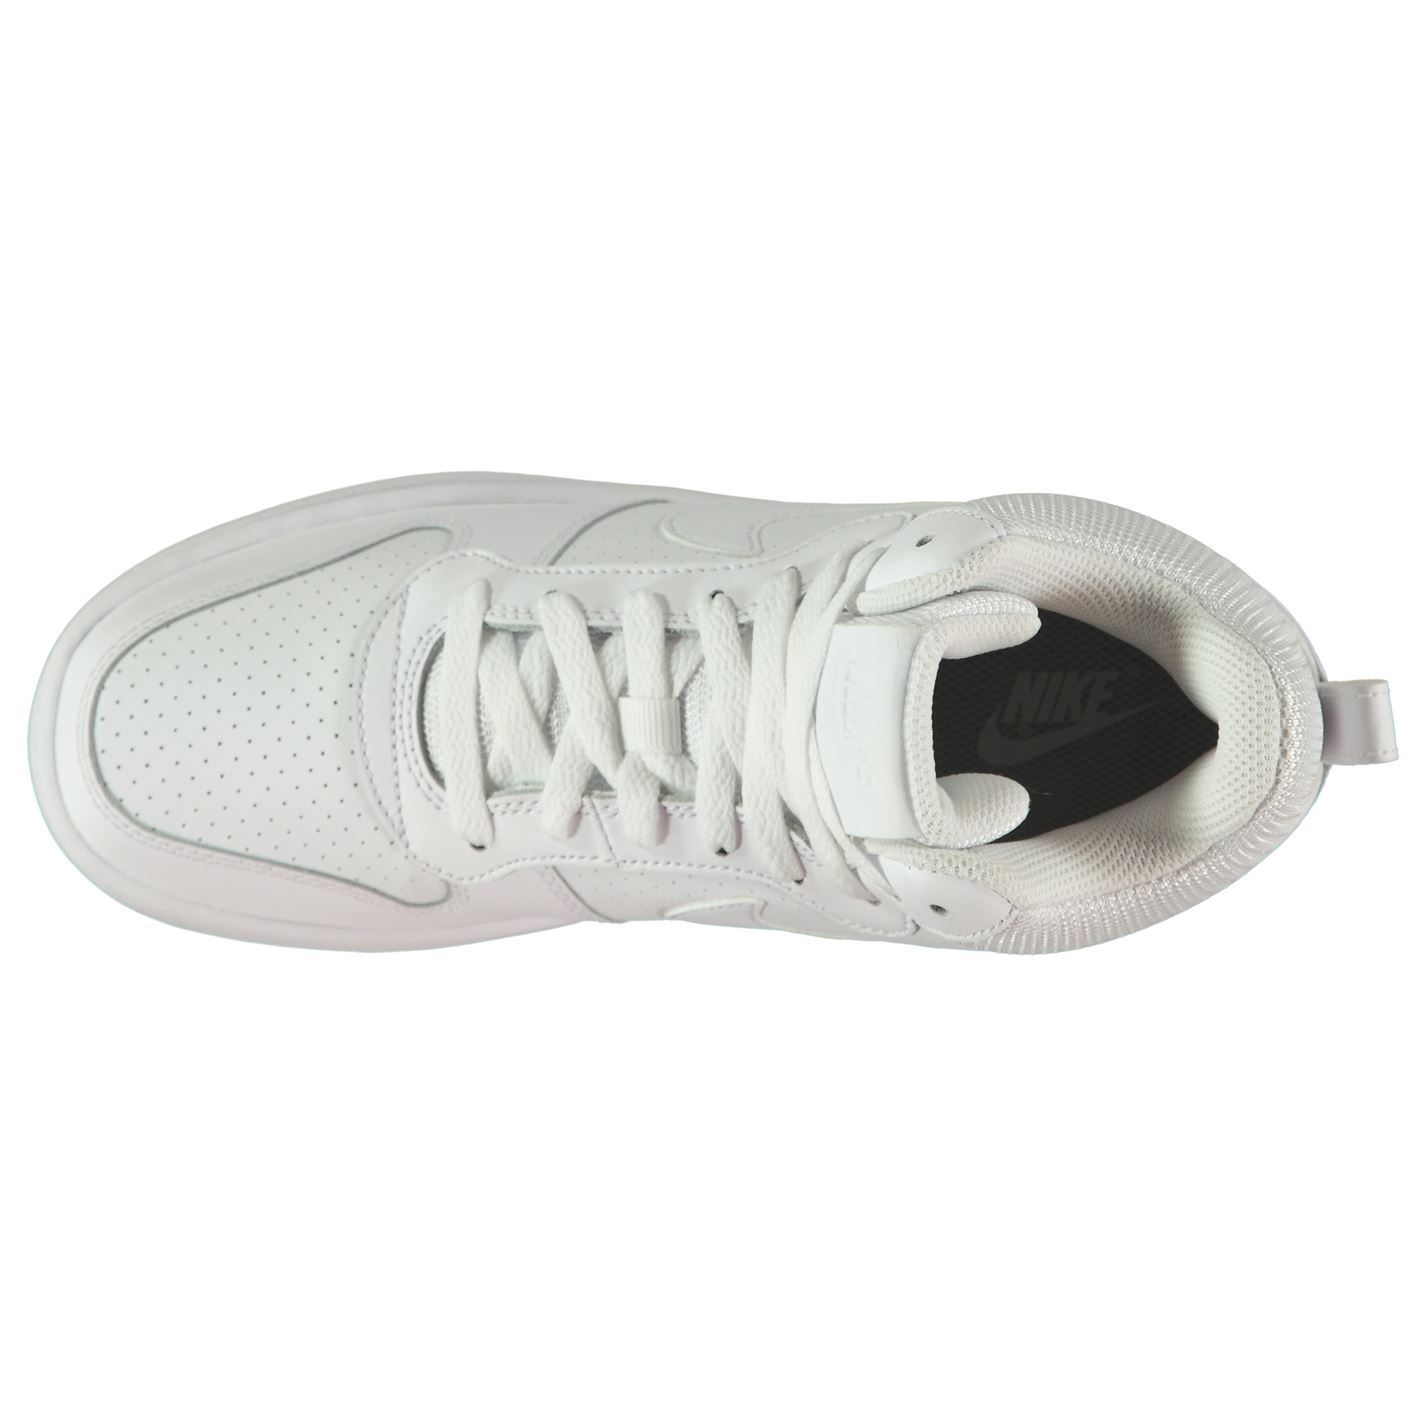 ... Nike Court Borough Mid Top Trainers Womens White Sports Trainers  Sneakers 3e9e6bb067cb8